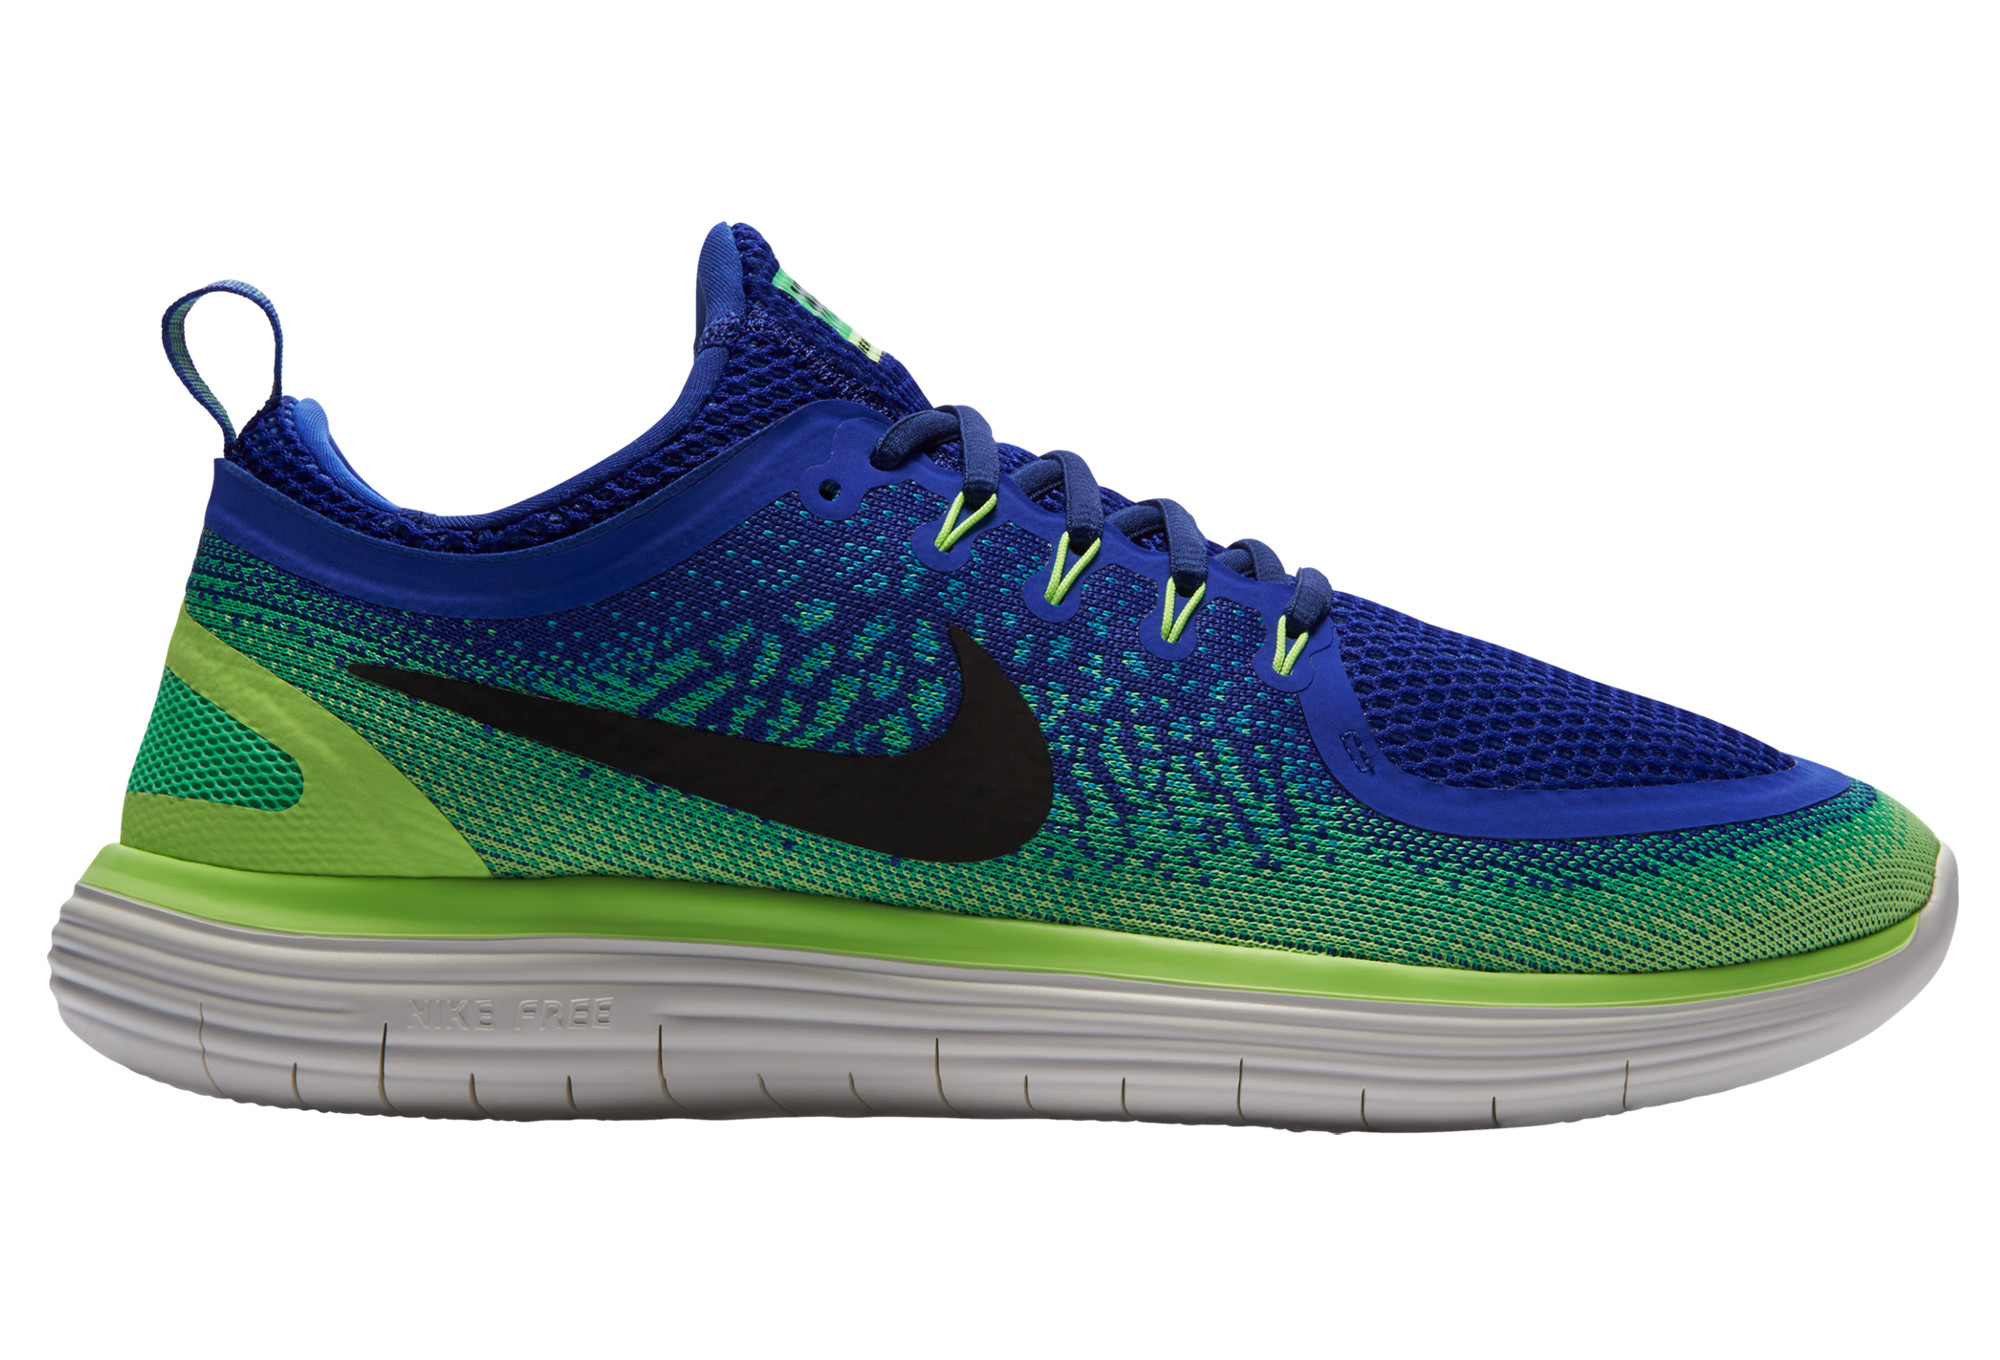 meet fa595 4c6ed Chaussures de Running Nike FREE RUN DISTANCE 2 Bleu   Vert